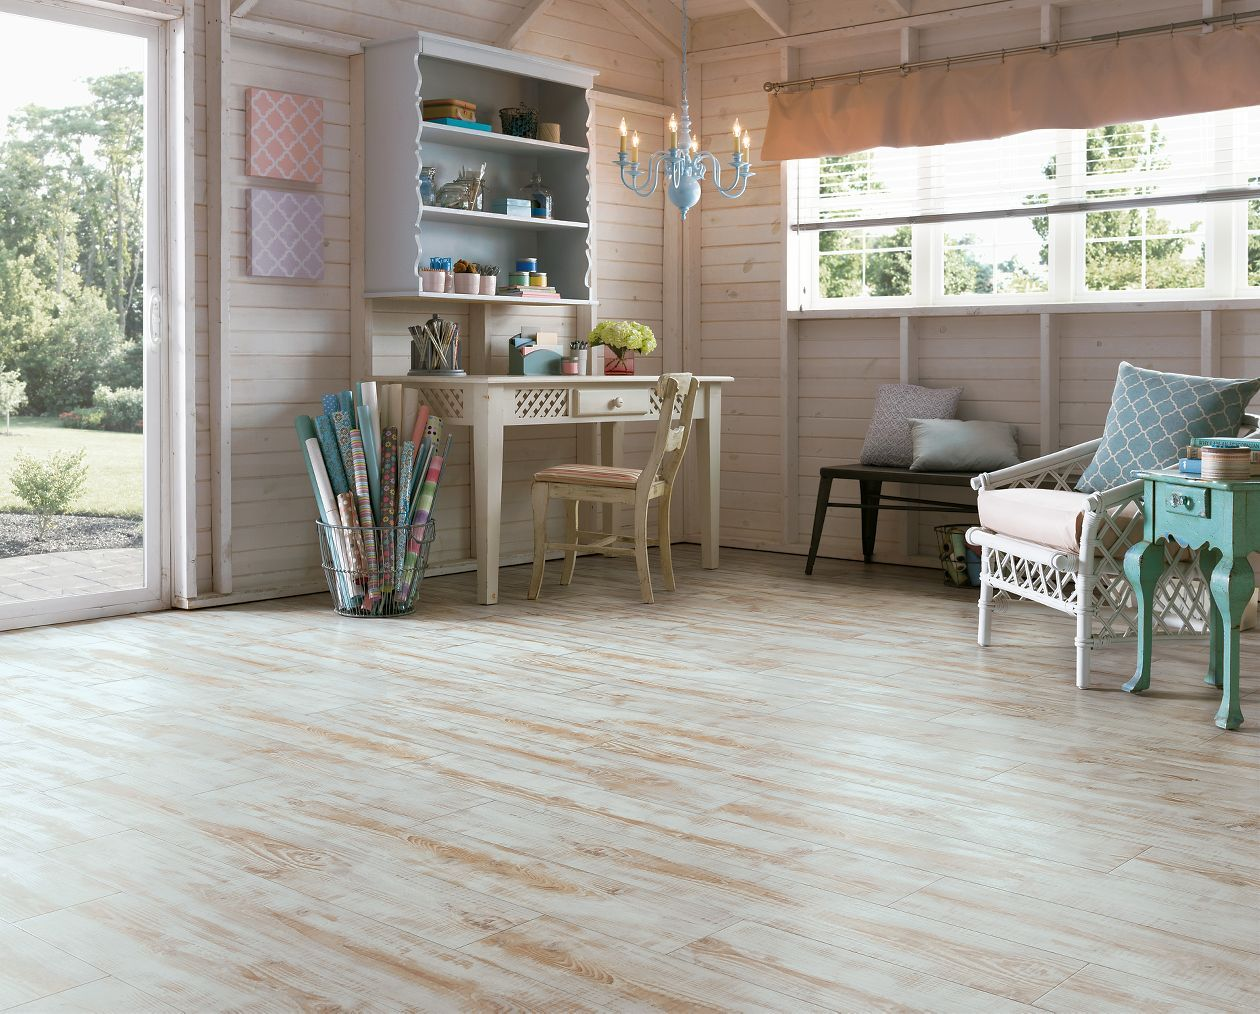 Armstrong Painted Pine - Whitewashed | Room in Mountain ... on linoleum kitchen flooring ideas, armstrong vinyl flooring, armstrong tile flooring, vinyl flooring kitchen ideas, tile flooring kitchen ideas,